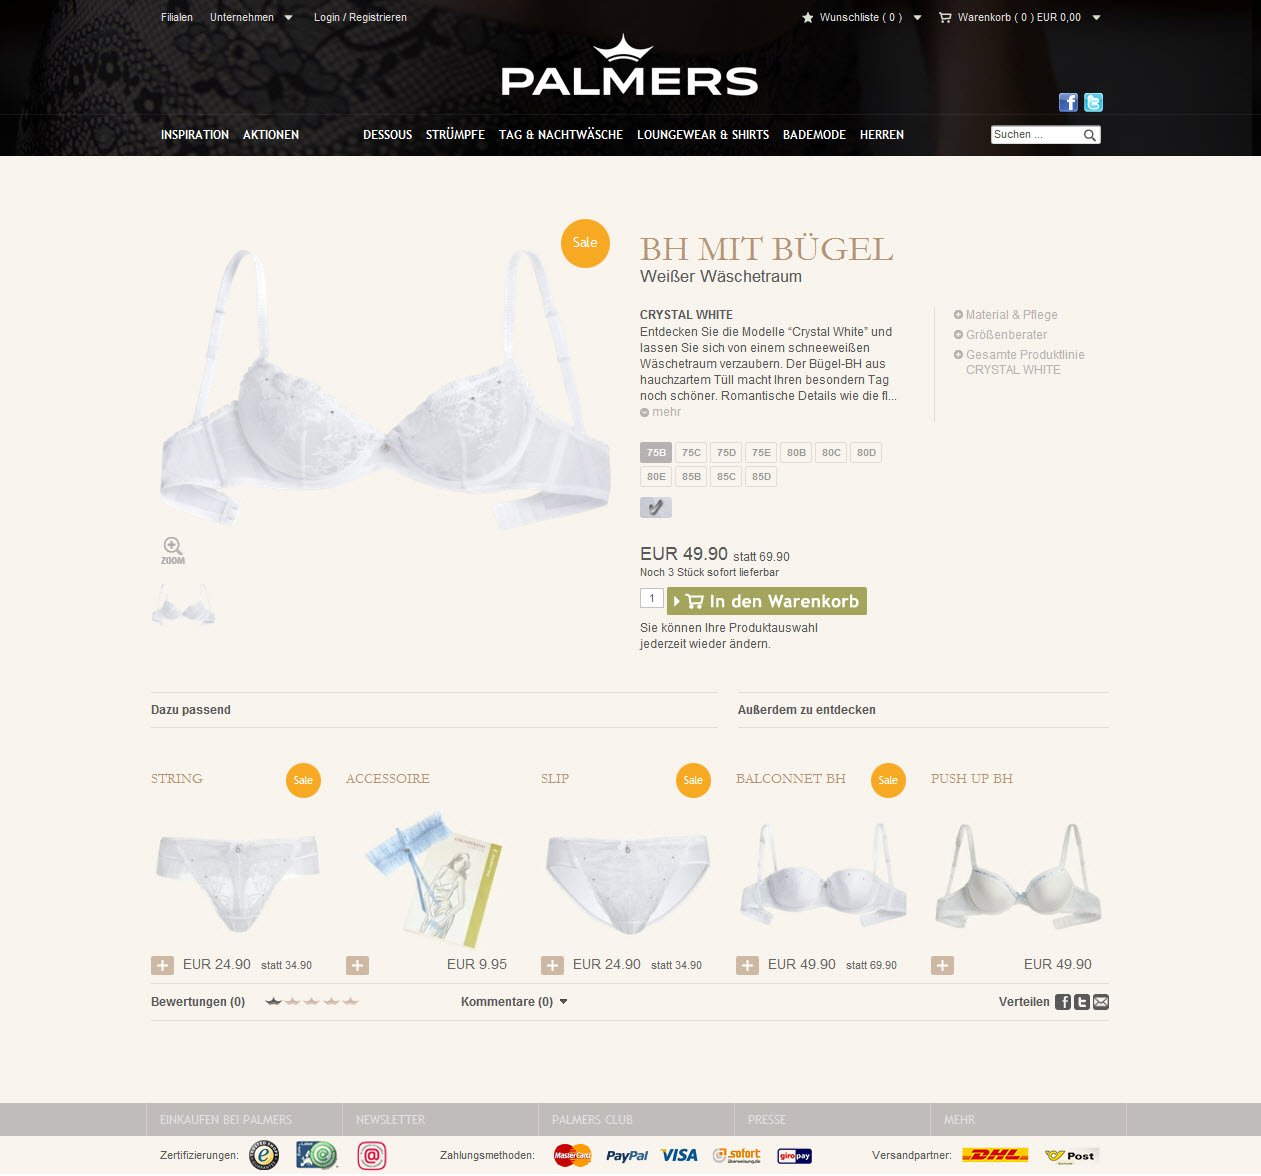 screenshot of the product listing page for Palmers